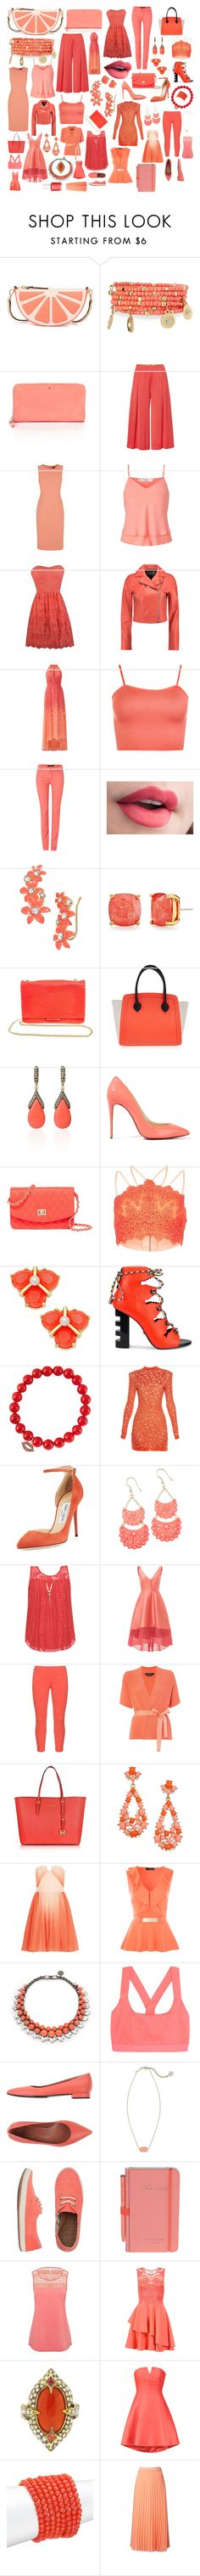 """Color Scheme: Coral"" by andyarana ❤ liked on Polyvore featuring Kate Spade, Emily & Ashley, Marella, Jaeger, Miss Selfridge, T By Alexander Wang, Badgley Mischka, WearAll, Oui and B Brian Atwood"